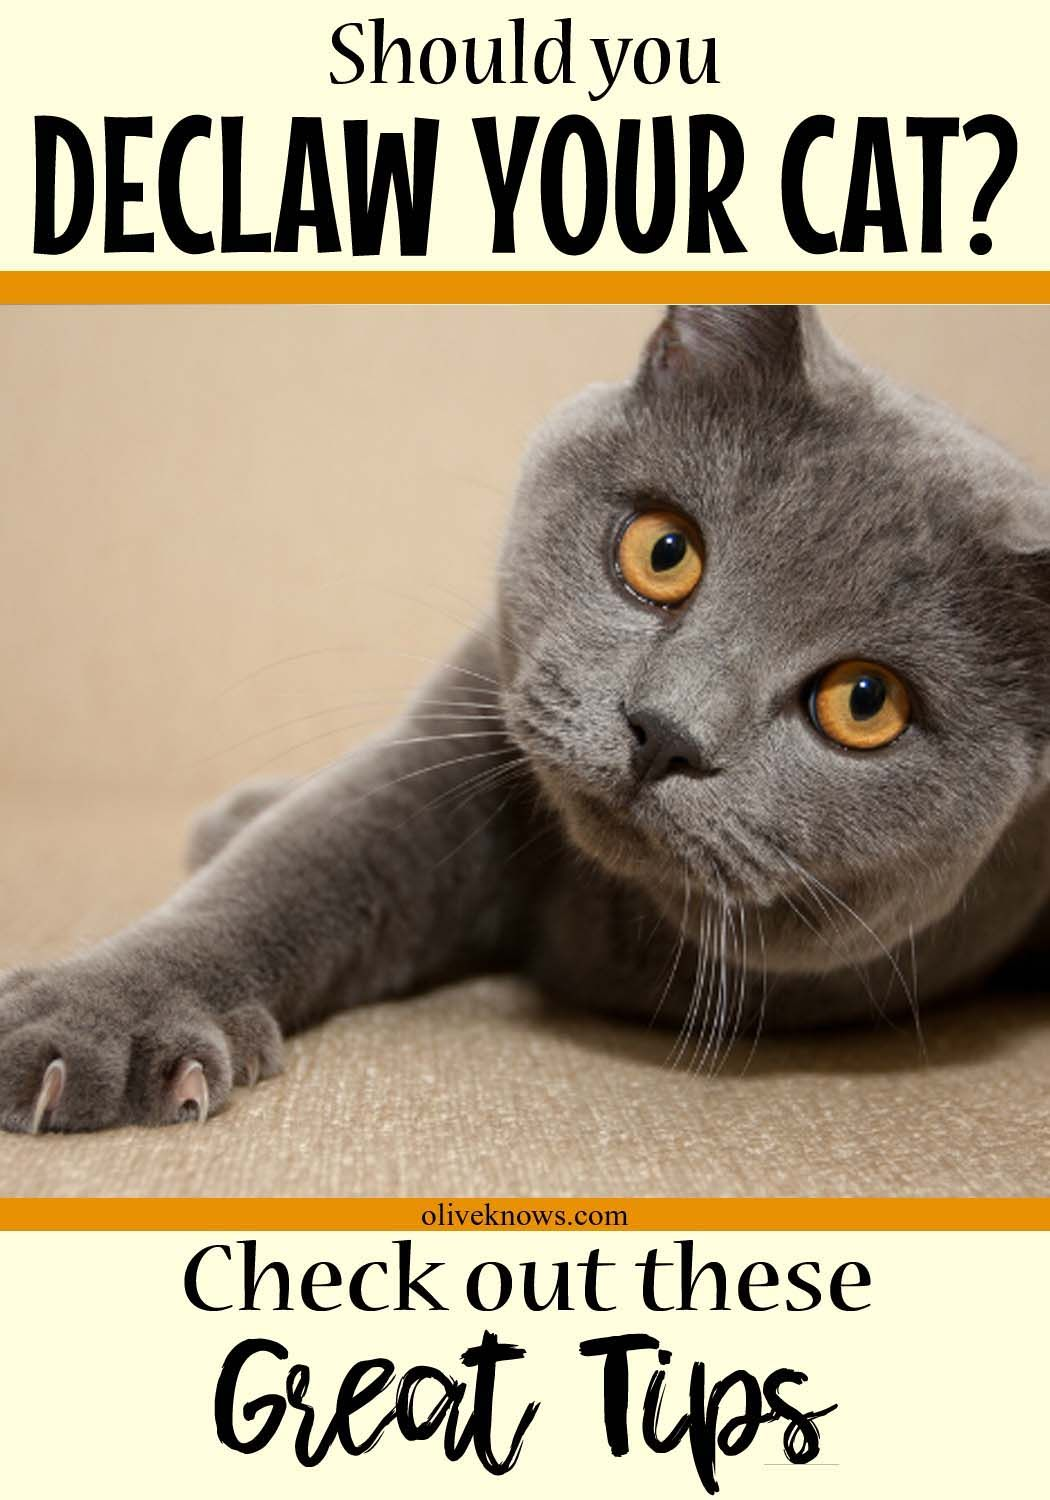 Why You Shouldn't Declaw Your Cat Cats, Cat health